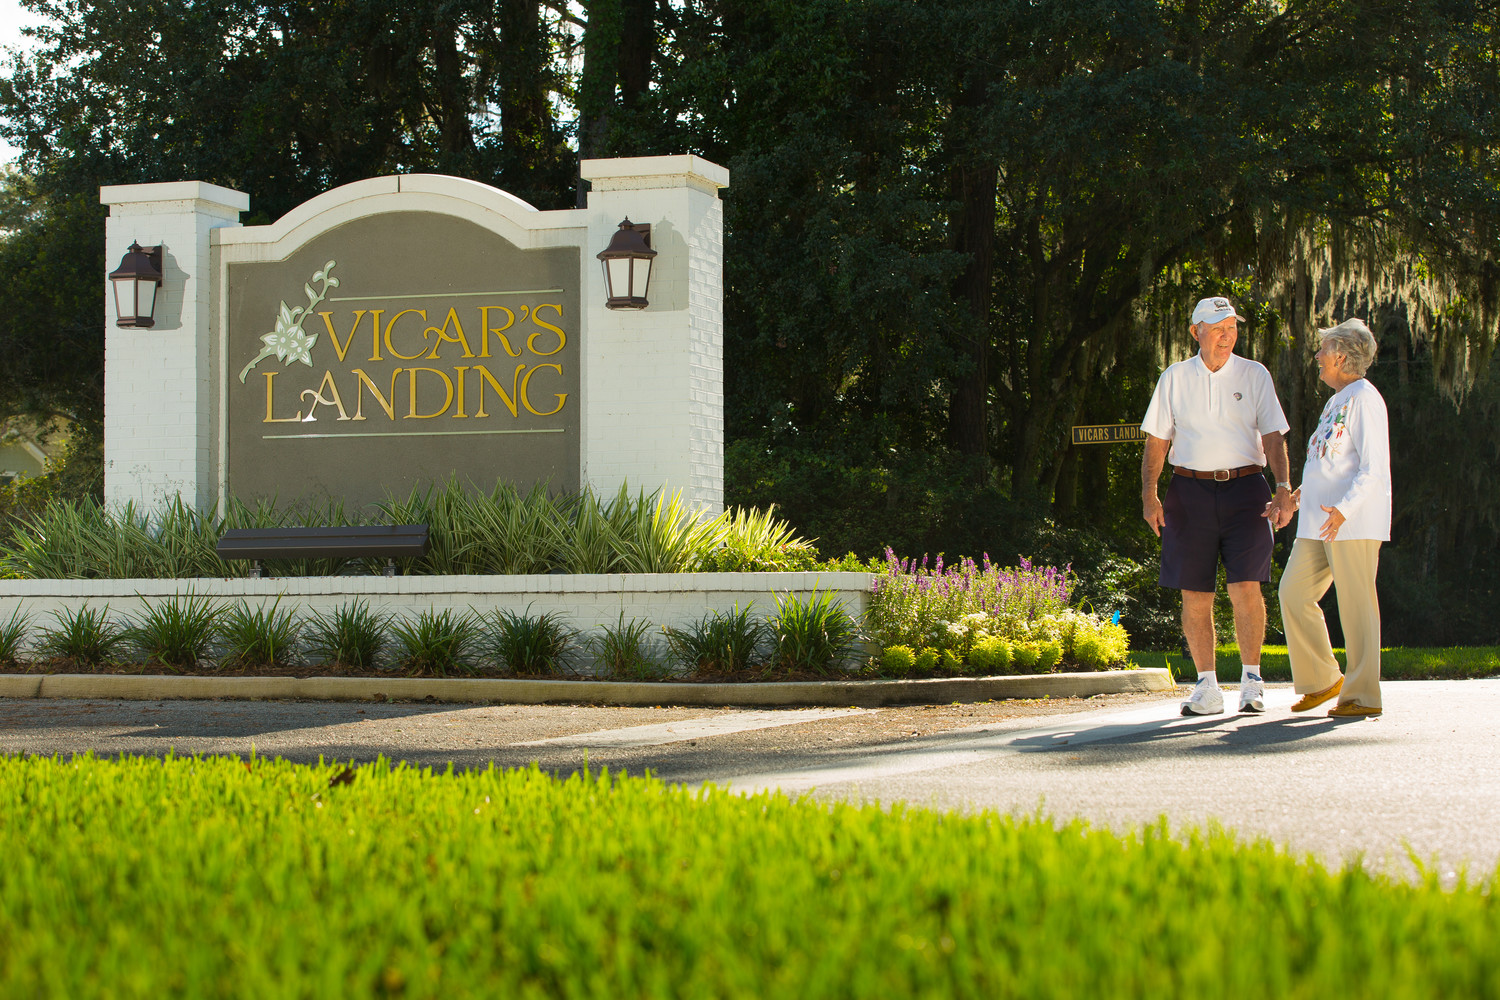 Vicar's Landing is now home to 350 seniors and has a wait list that could more than refill the campus.